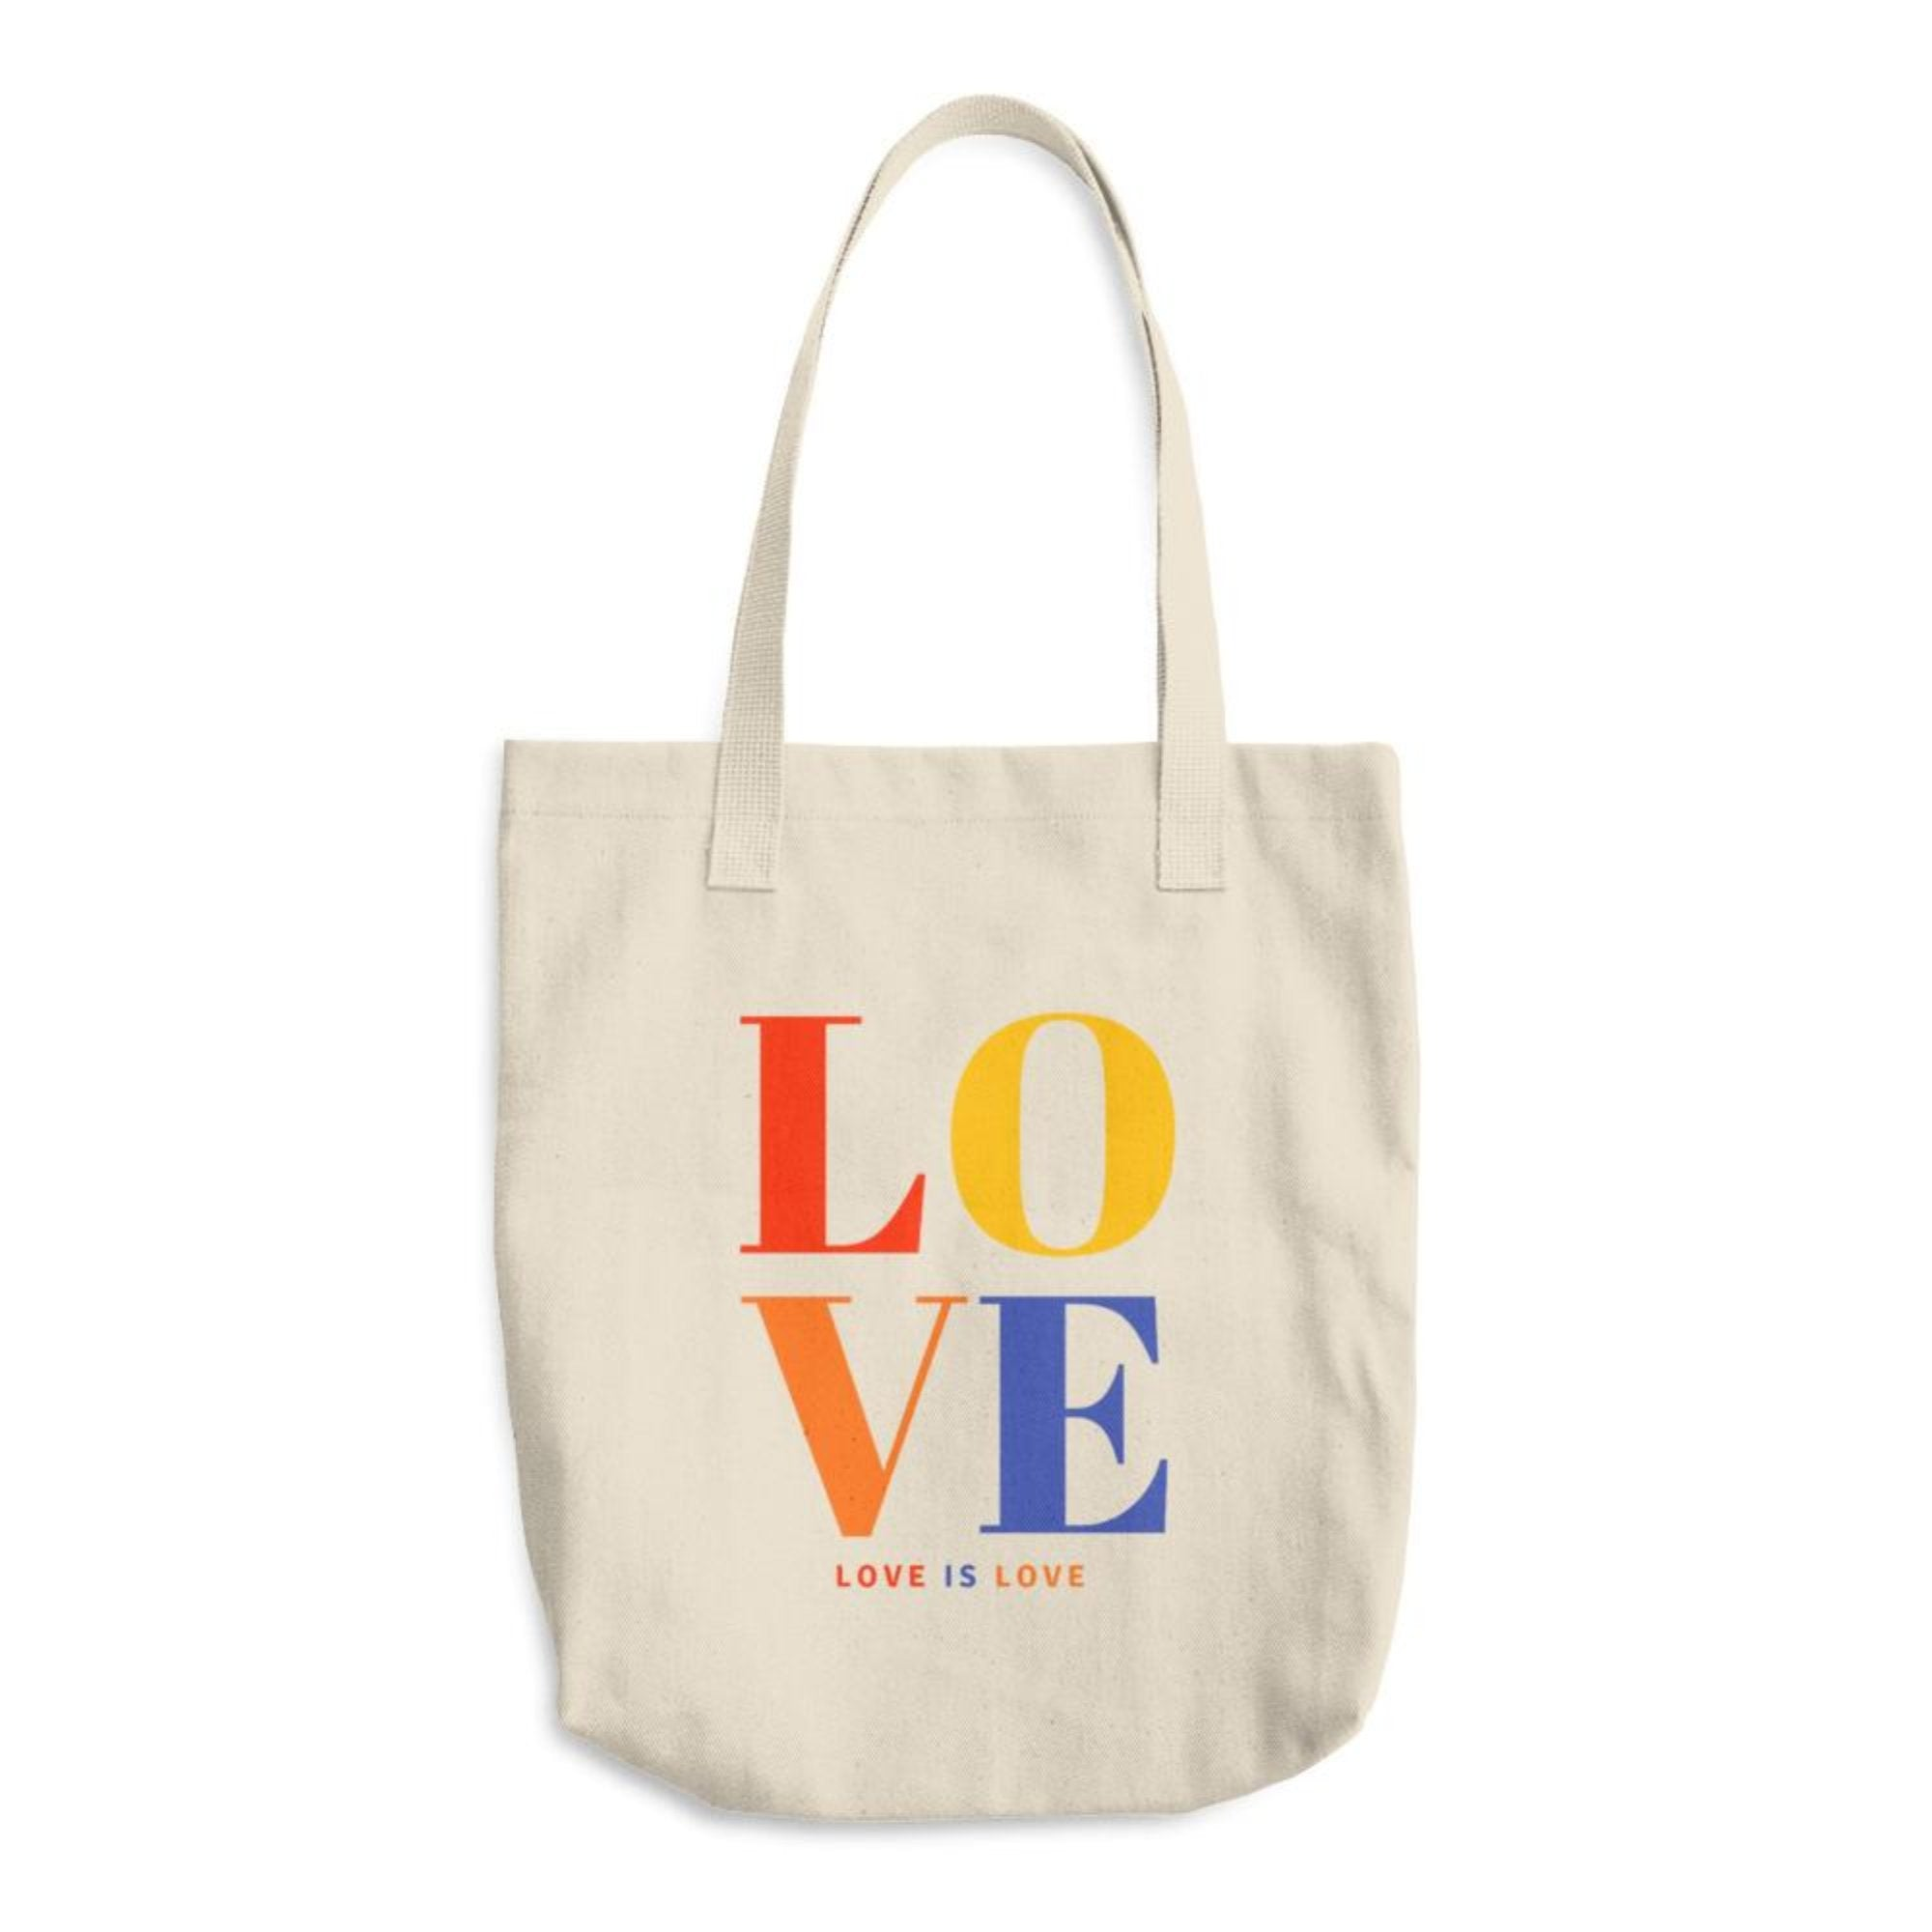 Love Reusable Grocery Tote Cotton Canvas Book Bag